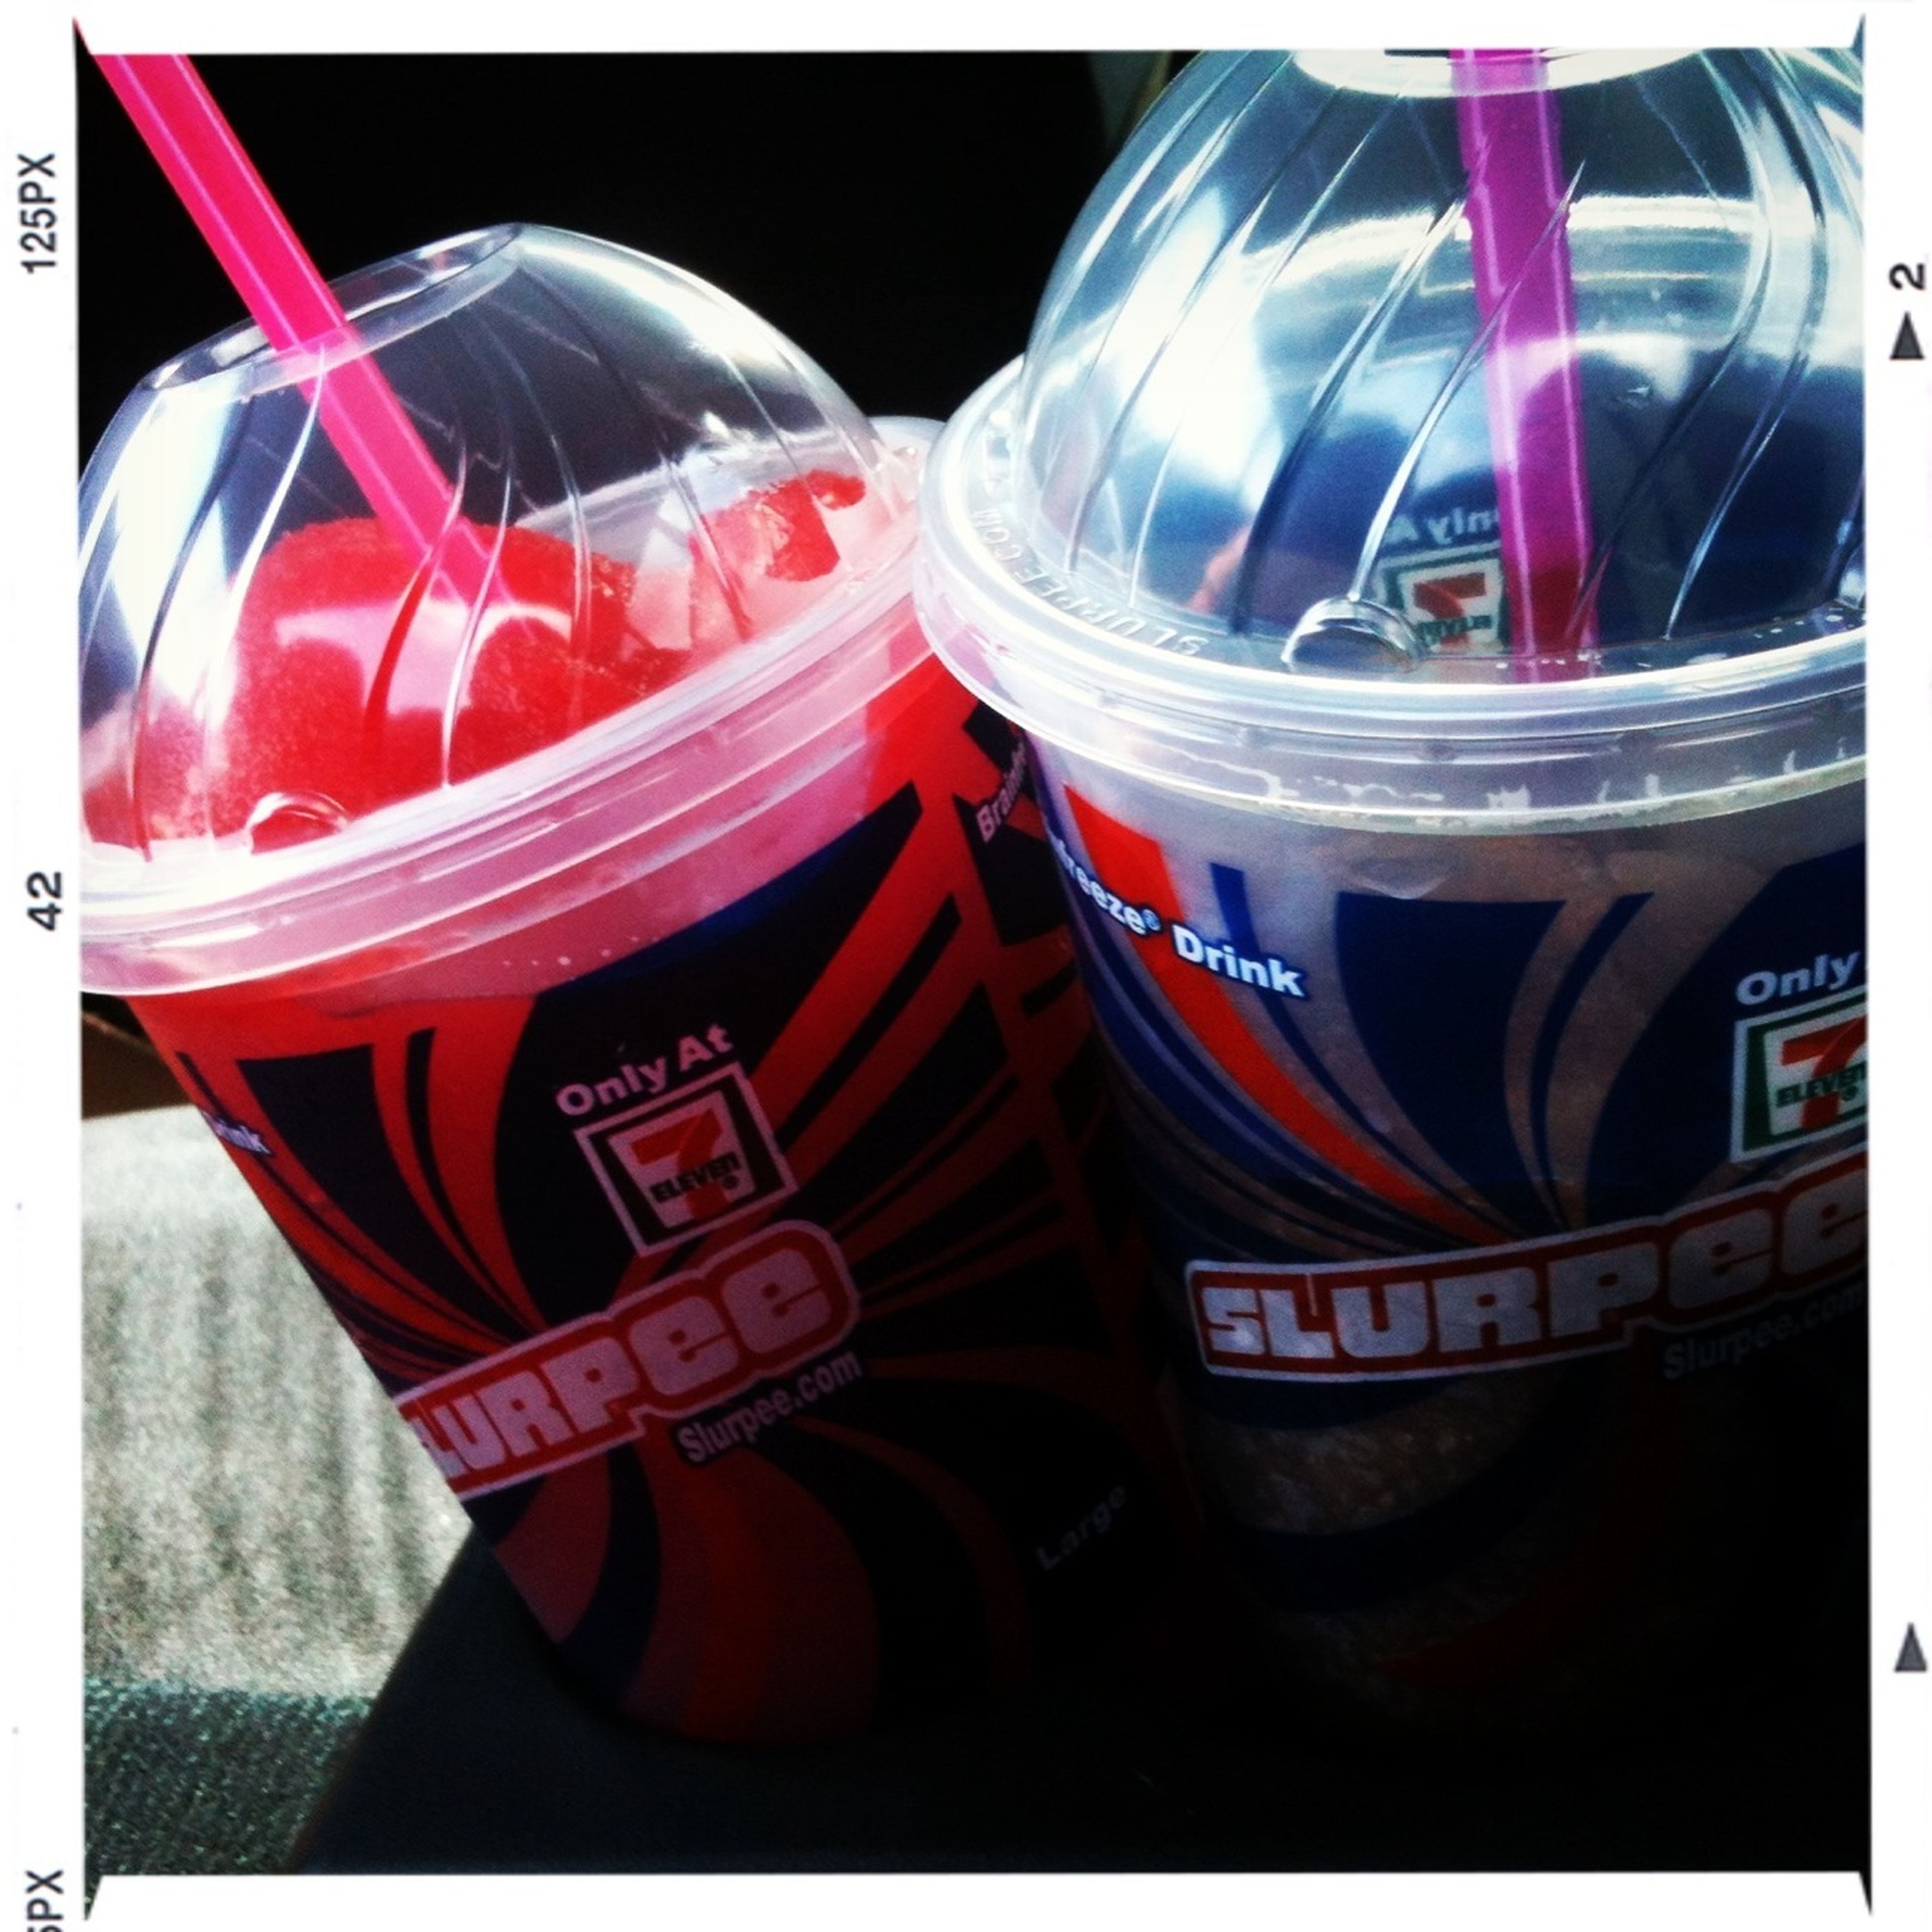 SLURPEE'S Are The Best ^.^ ♡